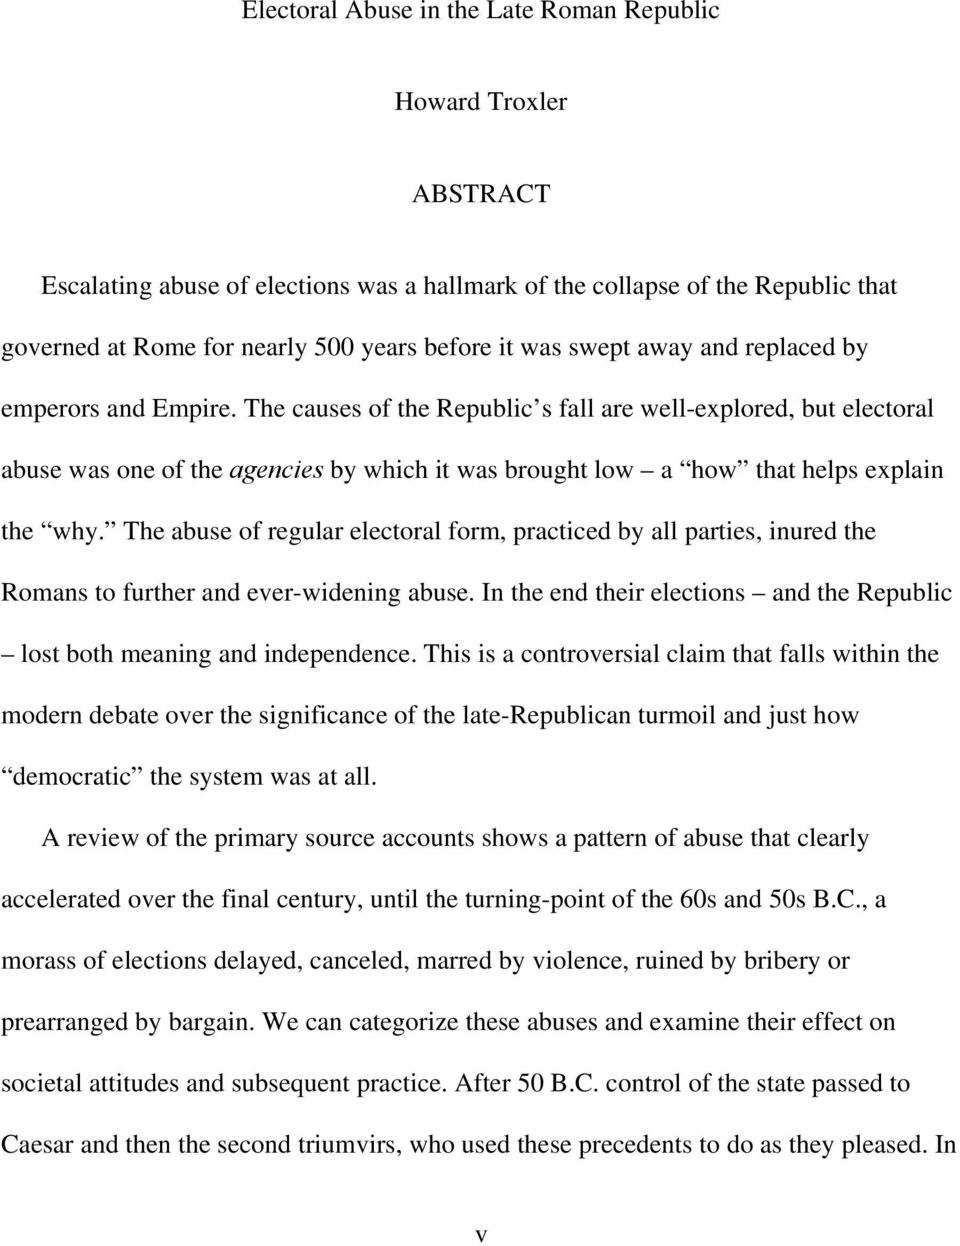 augustus restored republic essay Augustus and the senate [another first-year classics essay i'm all done now promise] 'men fit to be slaves' is this a fair description of the members of the senate under augustus augustus claimed to have 'restored the republic', and the senate was a crucial aspect of this.